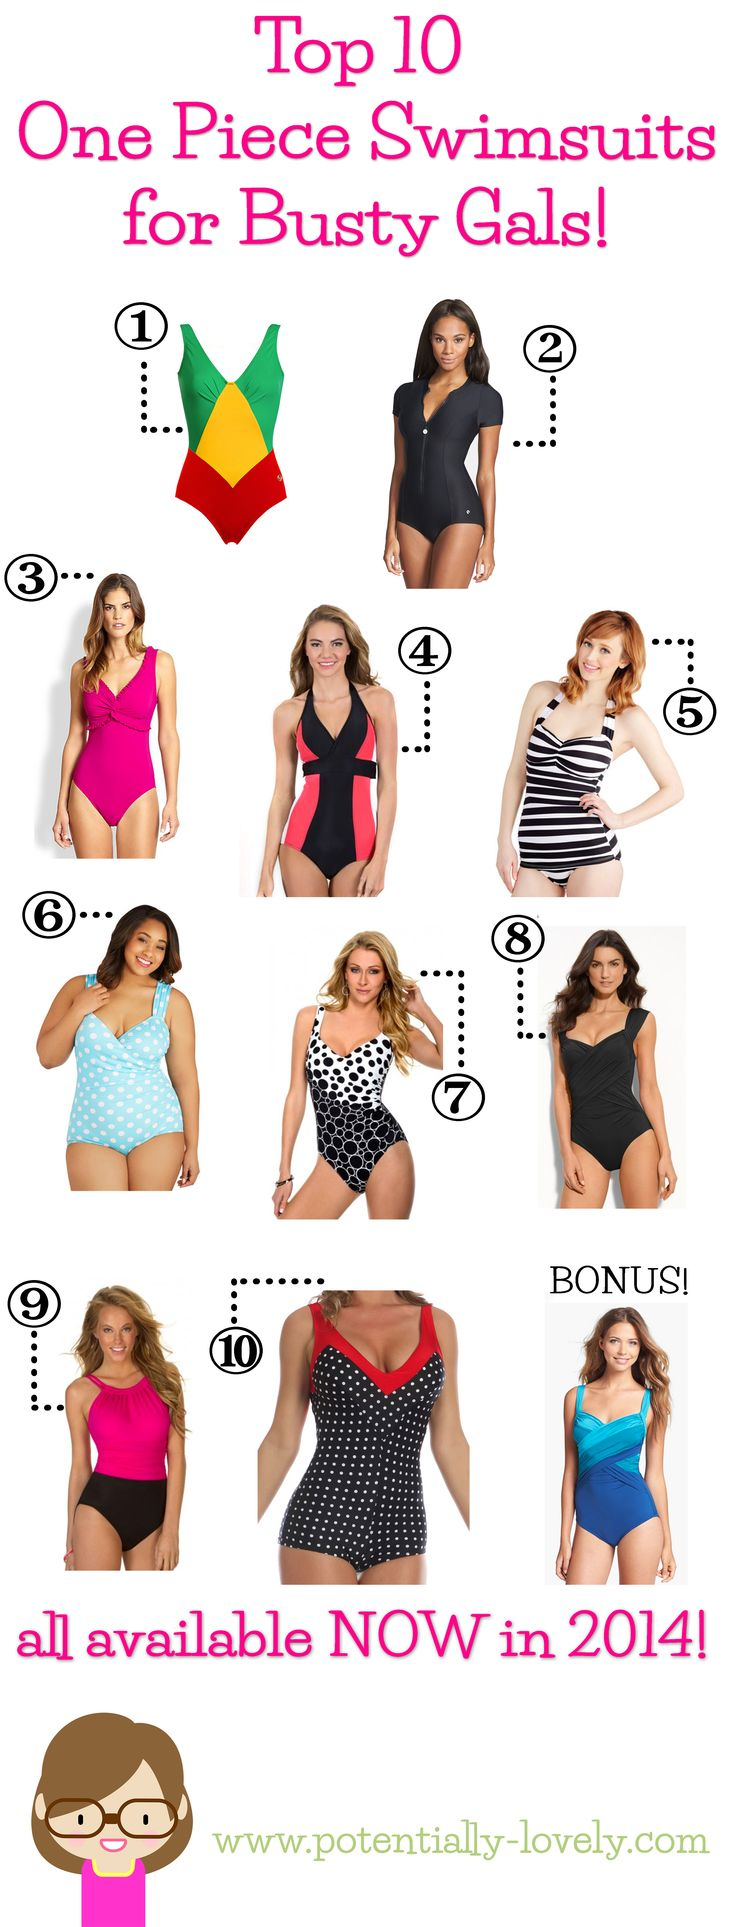 Top 10 Bathing Suits for Busty Ladies  |   http://potentially-lovely.com